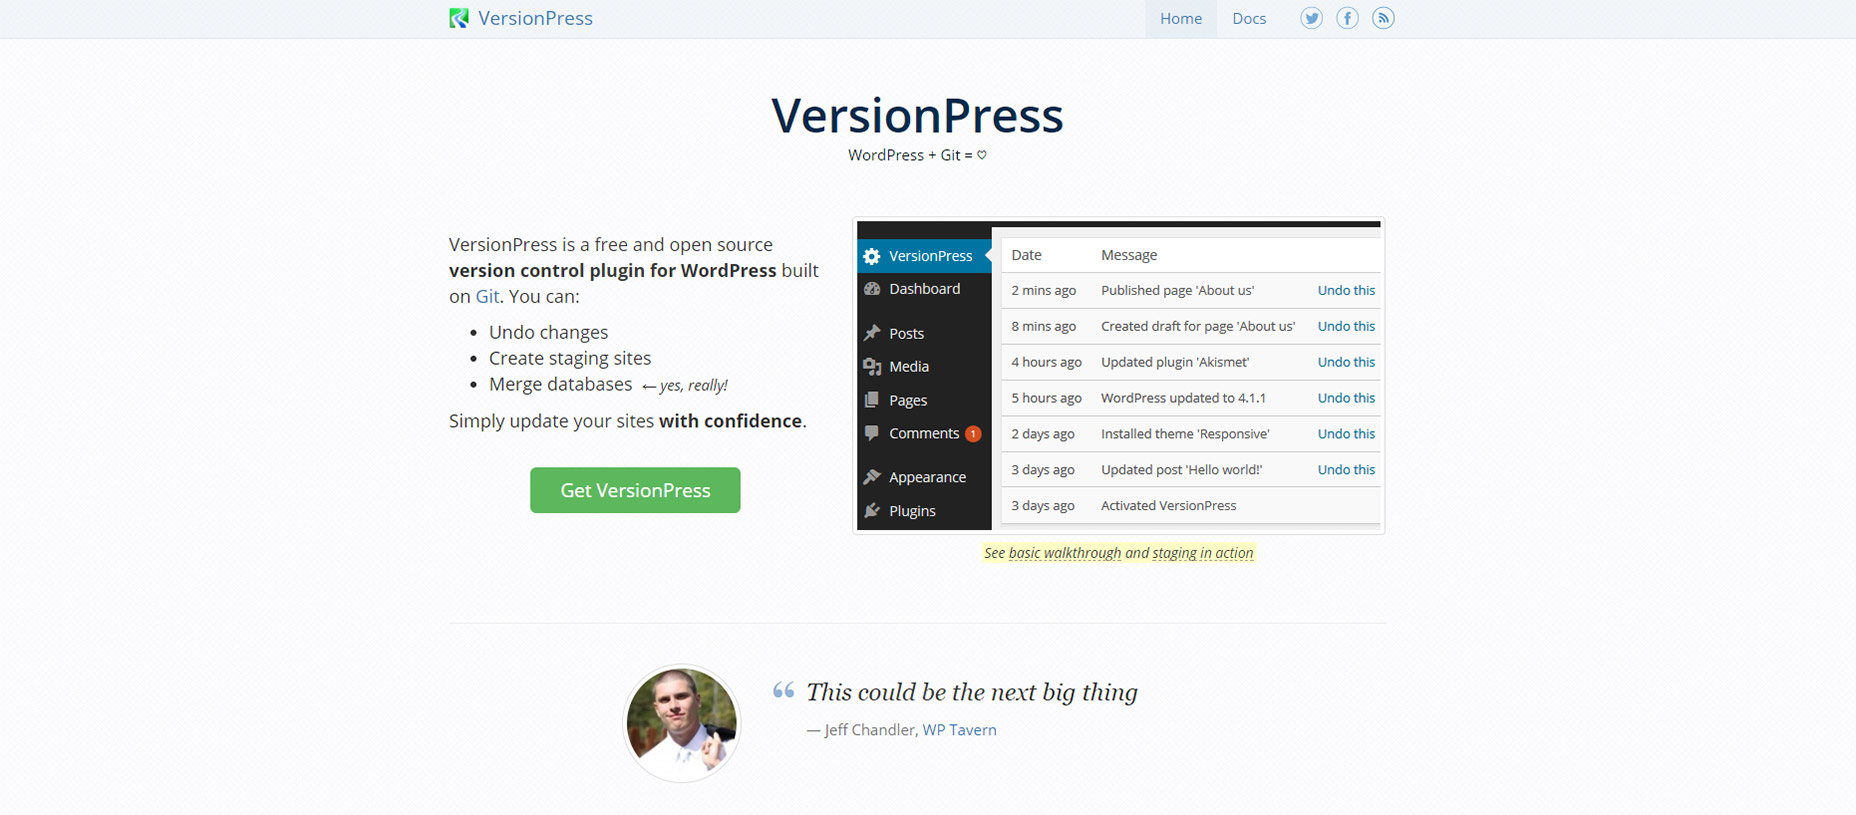 05-version-press-plugin-homepage